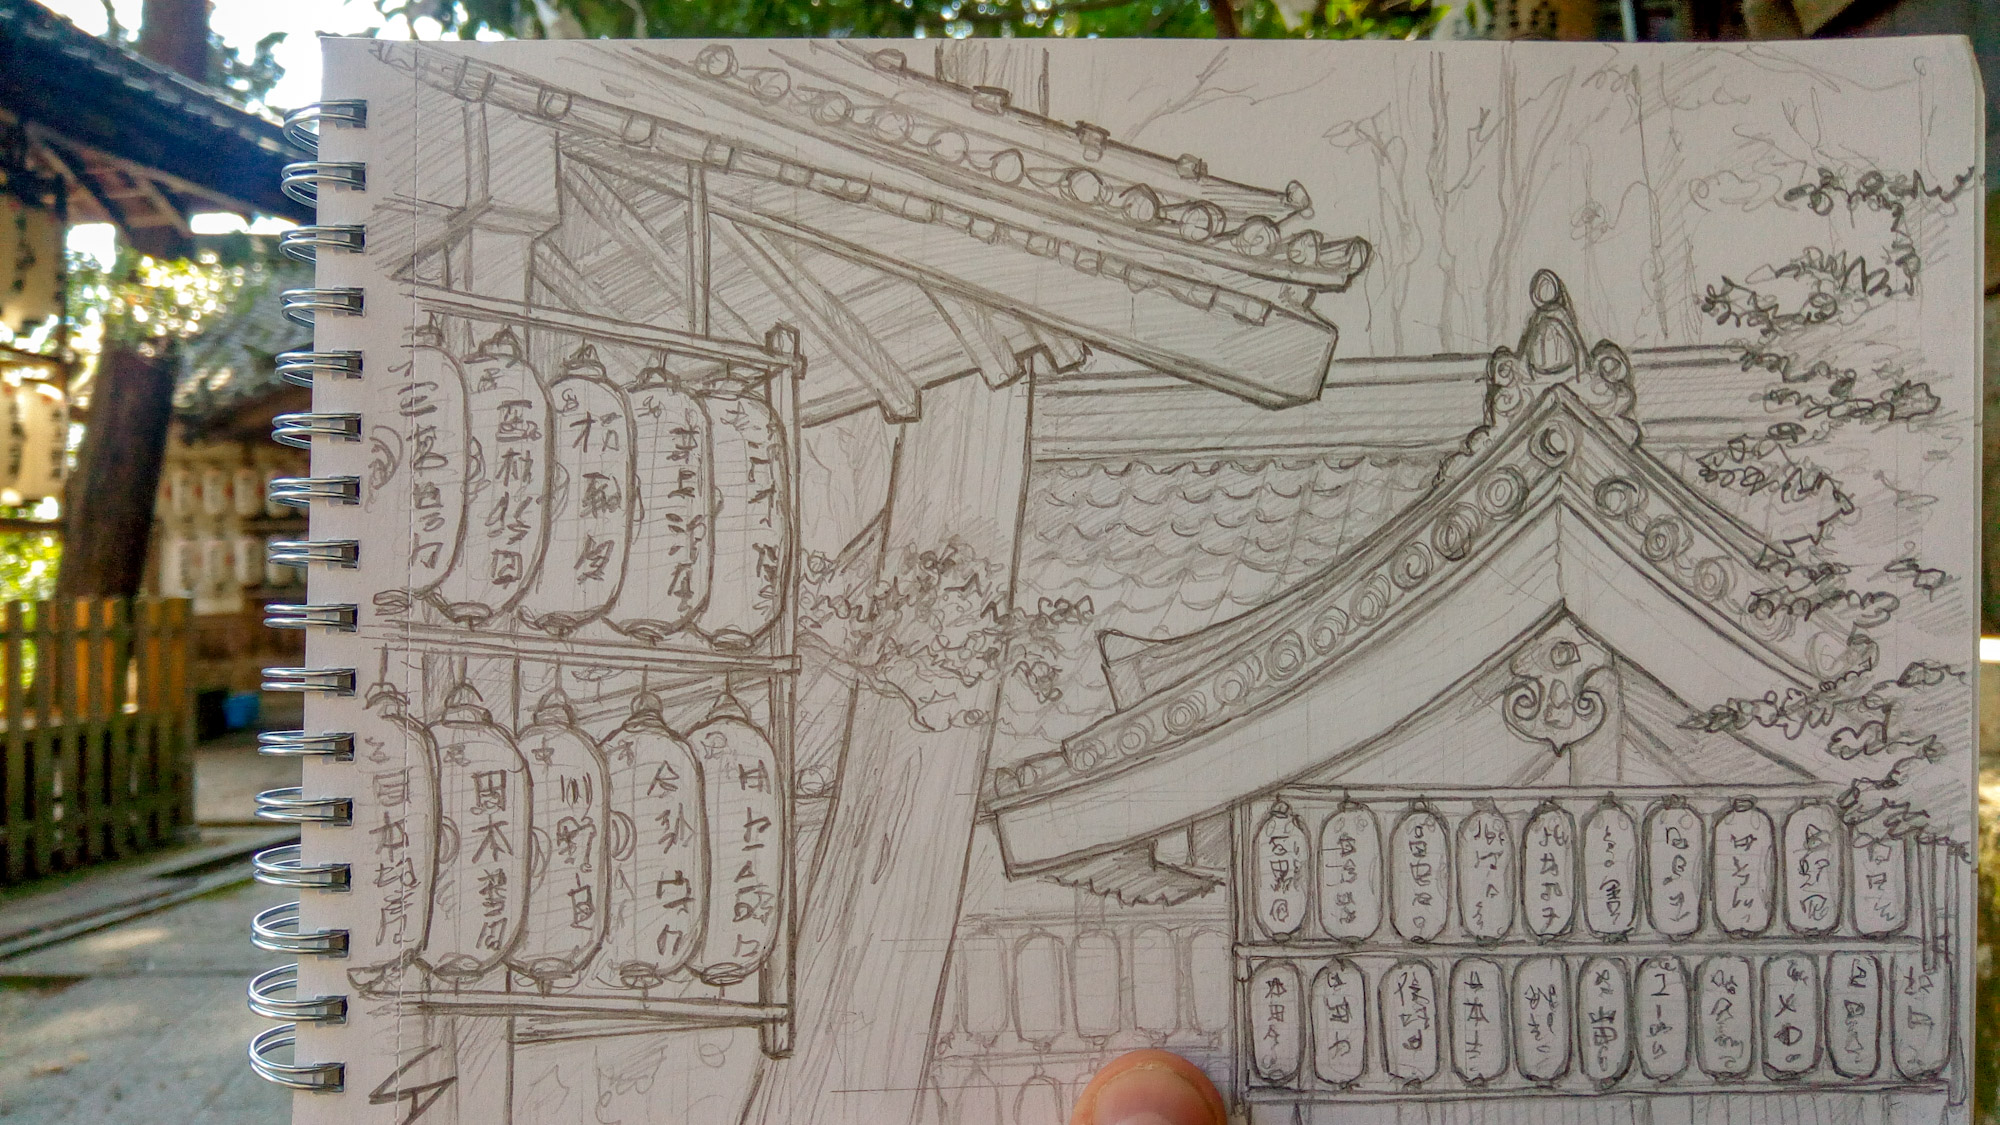 Urban photo art - Sakyo-Ku, Kyoto, Japan. 'Yagami Shrine.' As I sketched in the dappled sunlight, the peaceful meditative moment was only occasionally broken by a few locals coming to pray - bowing and clapping their hands (warding off evil spirits, before making a prayer). This only added to the beauty of the experience. sketchbookexplorer.com @davidasutton @sketchbookexplorer Facebook.com/davidanthonysutton #japan #kyoto #sakyoku #yagamishrine #travel #travelblog #photography #cheeryblossom #cherryblossomseason